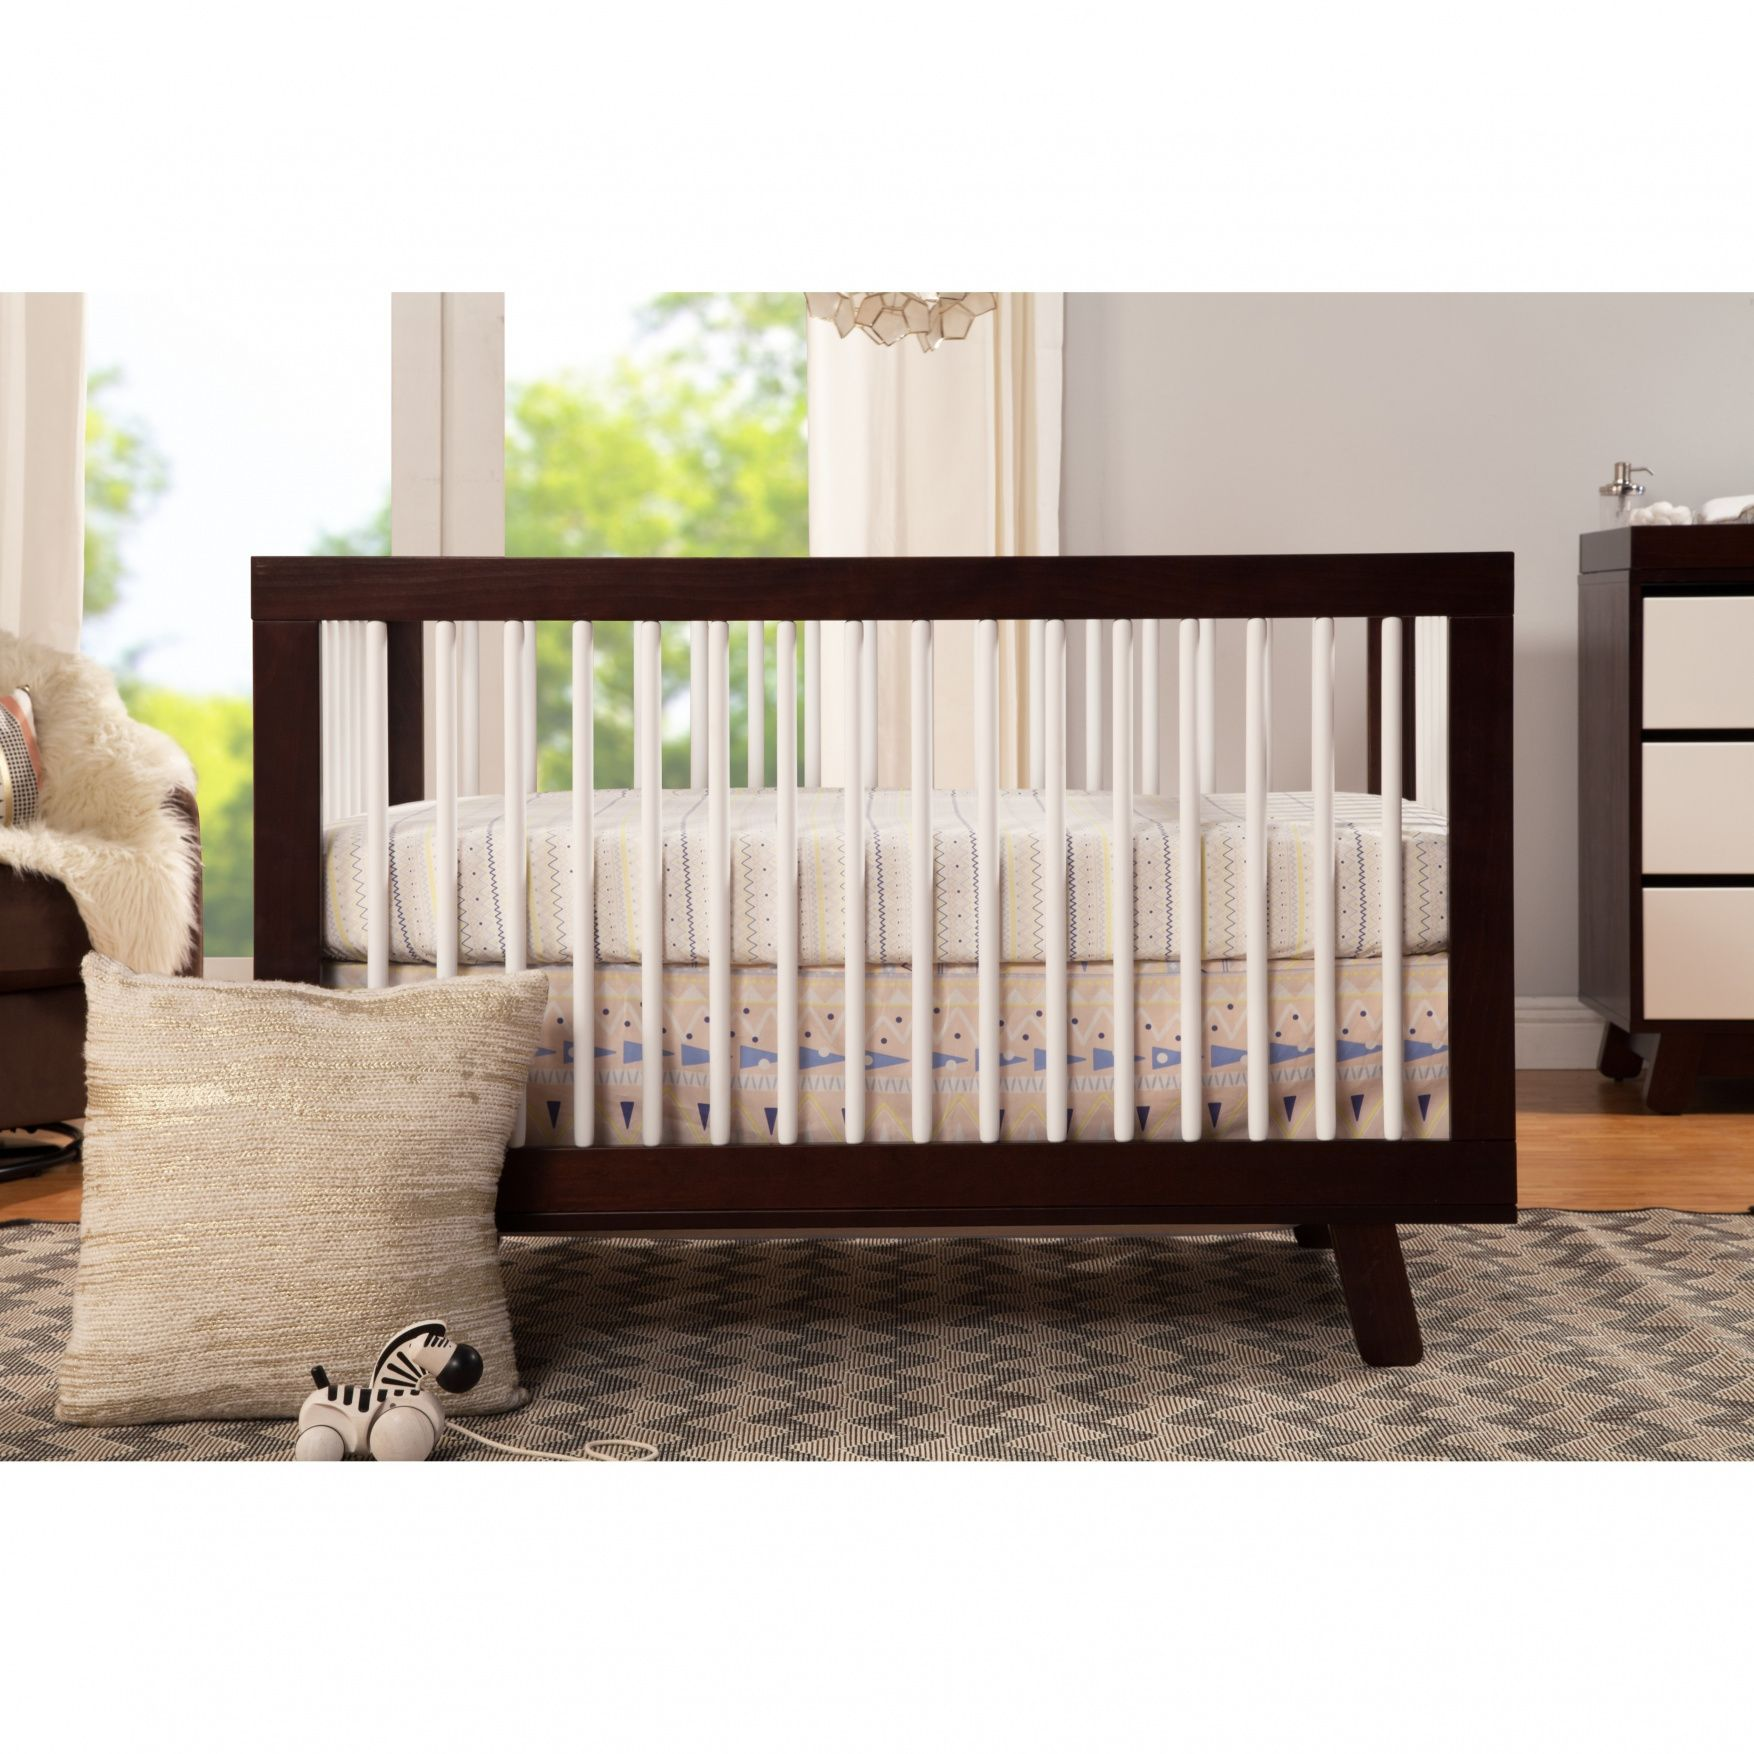 2018 convertible crib to toddler bed wall art ideas for bedroom